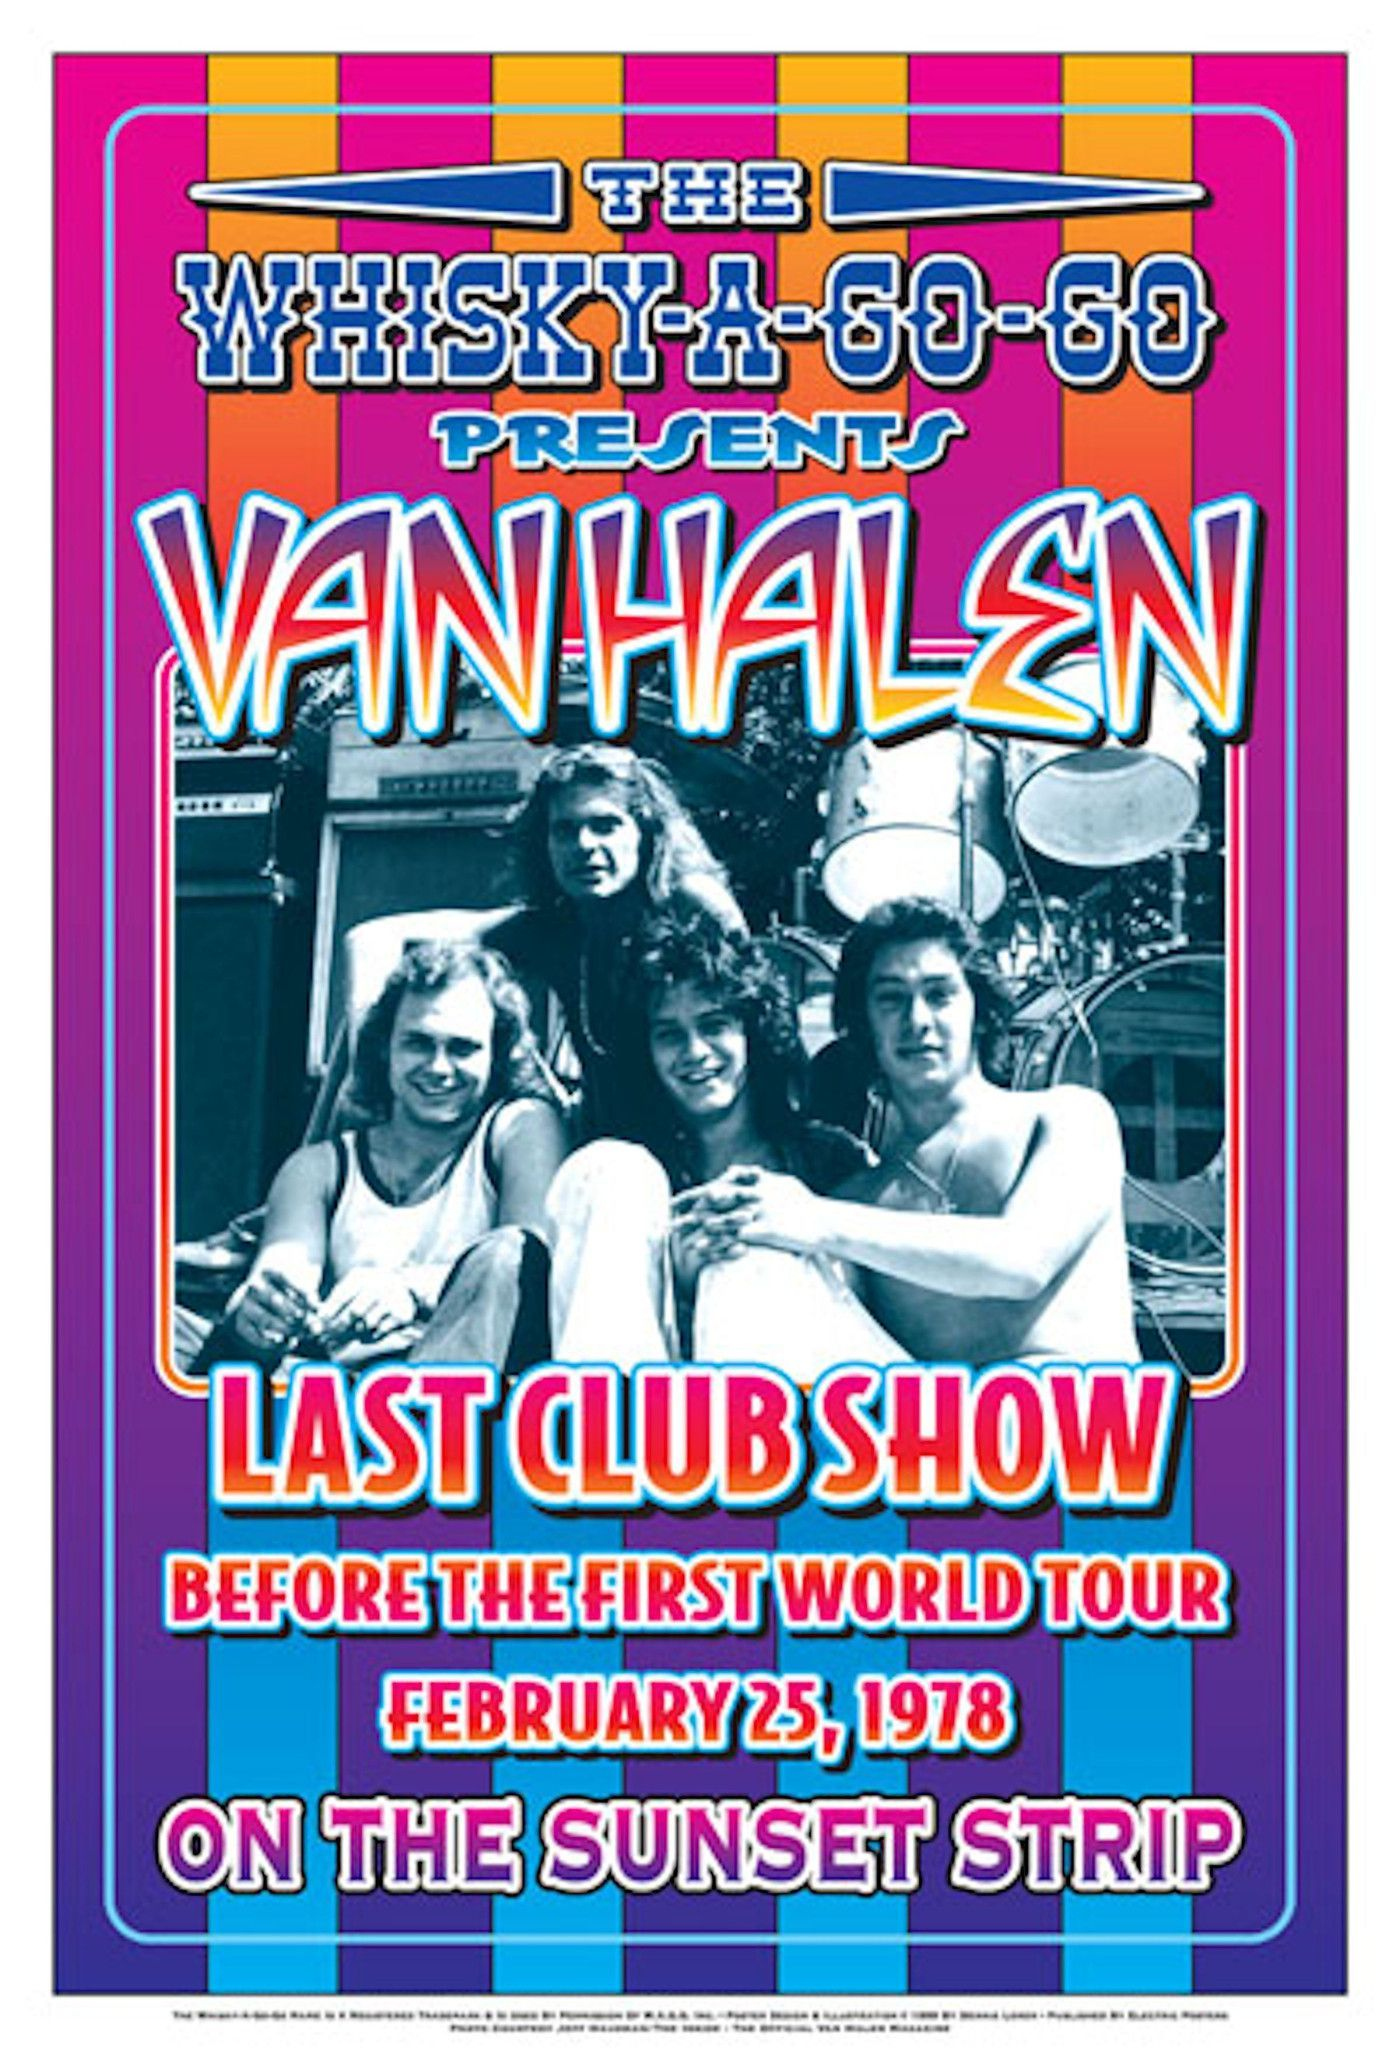 d459d50efee Van Halen Last Club Show Before the First World Tour Begins February ...